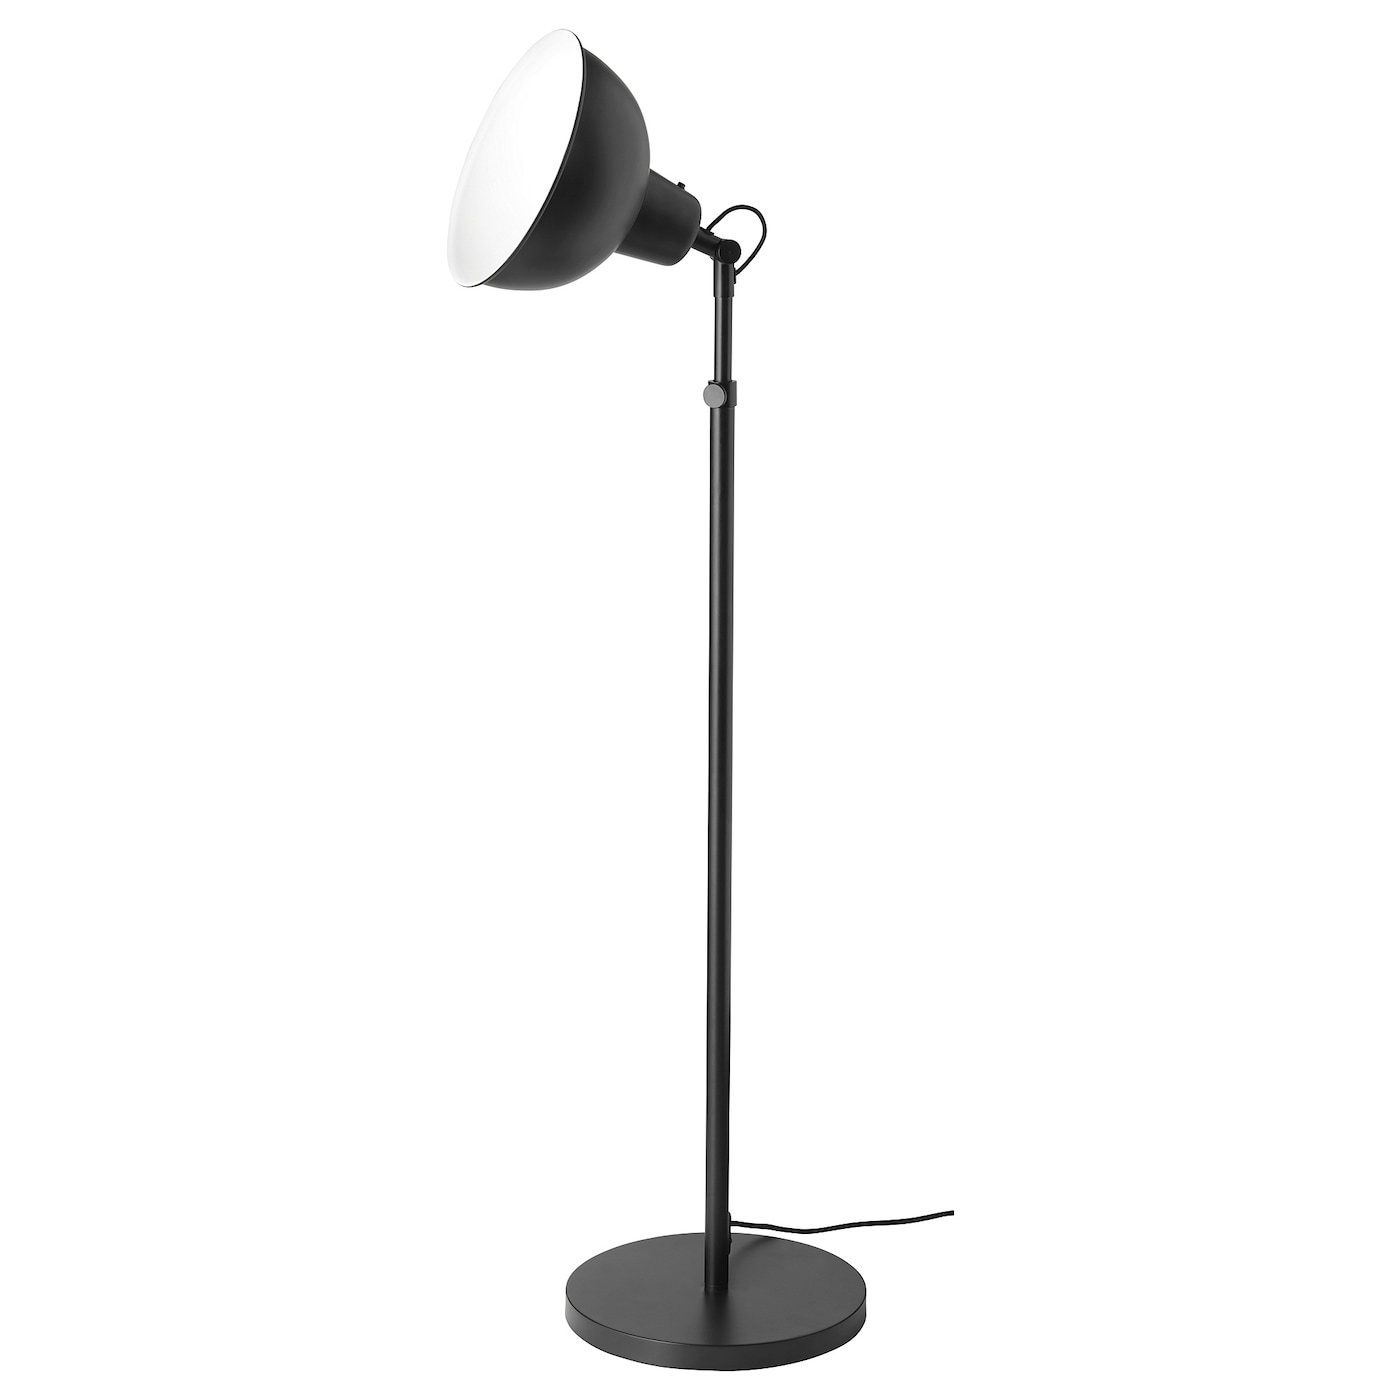 Skurup Floor Uplighter Black Ikea